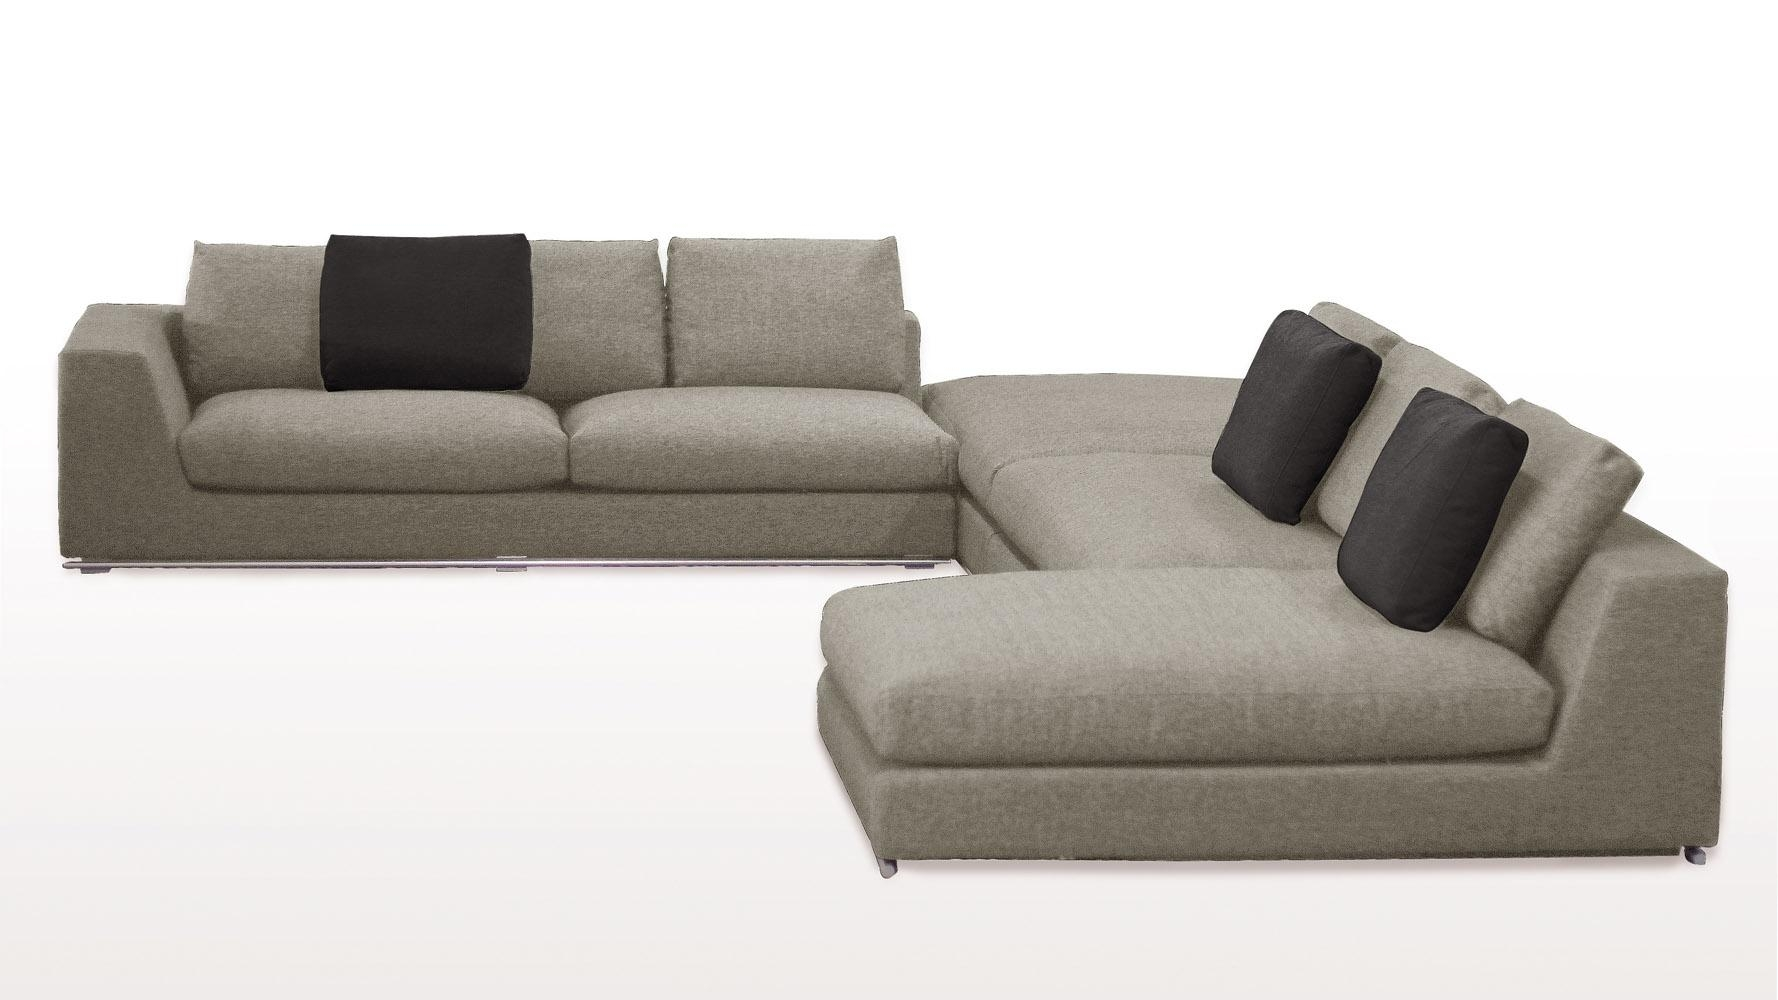 Comodo Sectional Sofa With Ottoman – Grey | Zuri Furniture With Regard To Armless Sectional Sofa (Image 5 of 15)